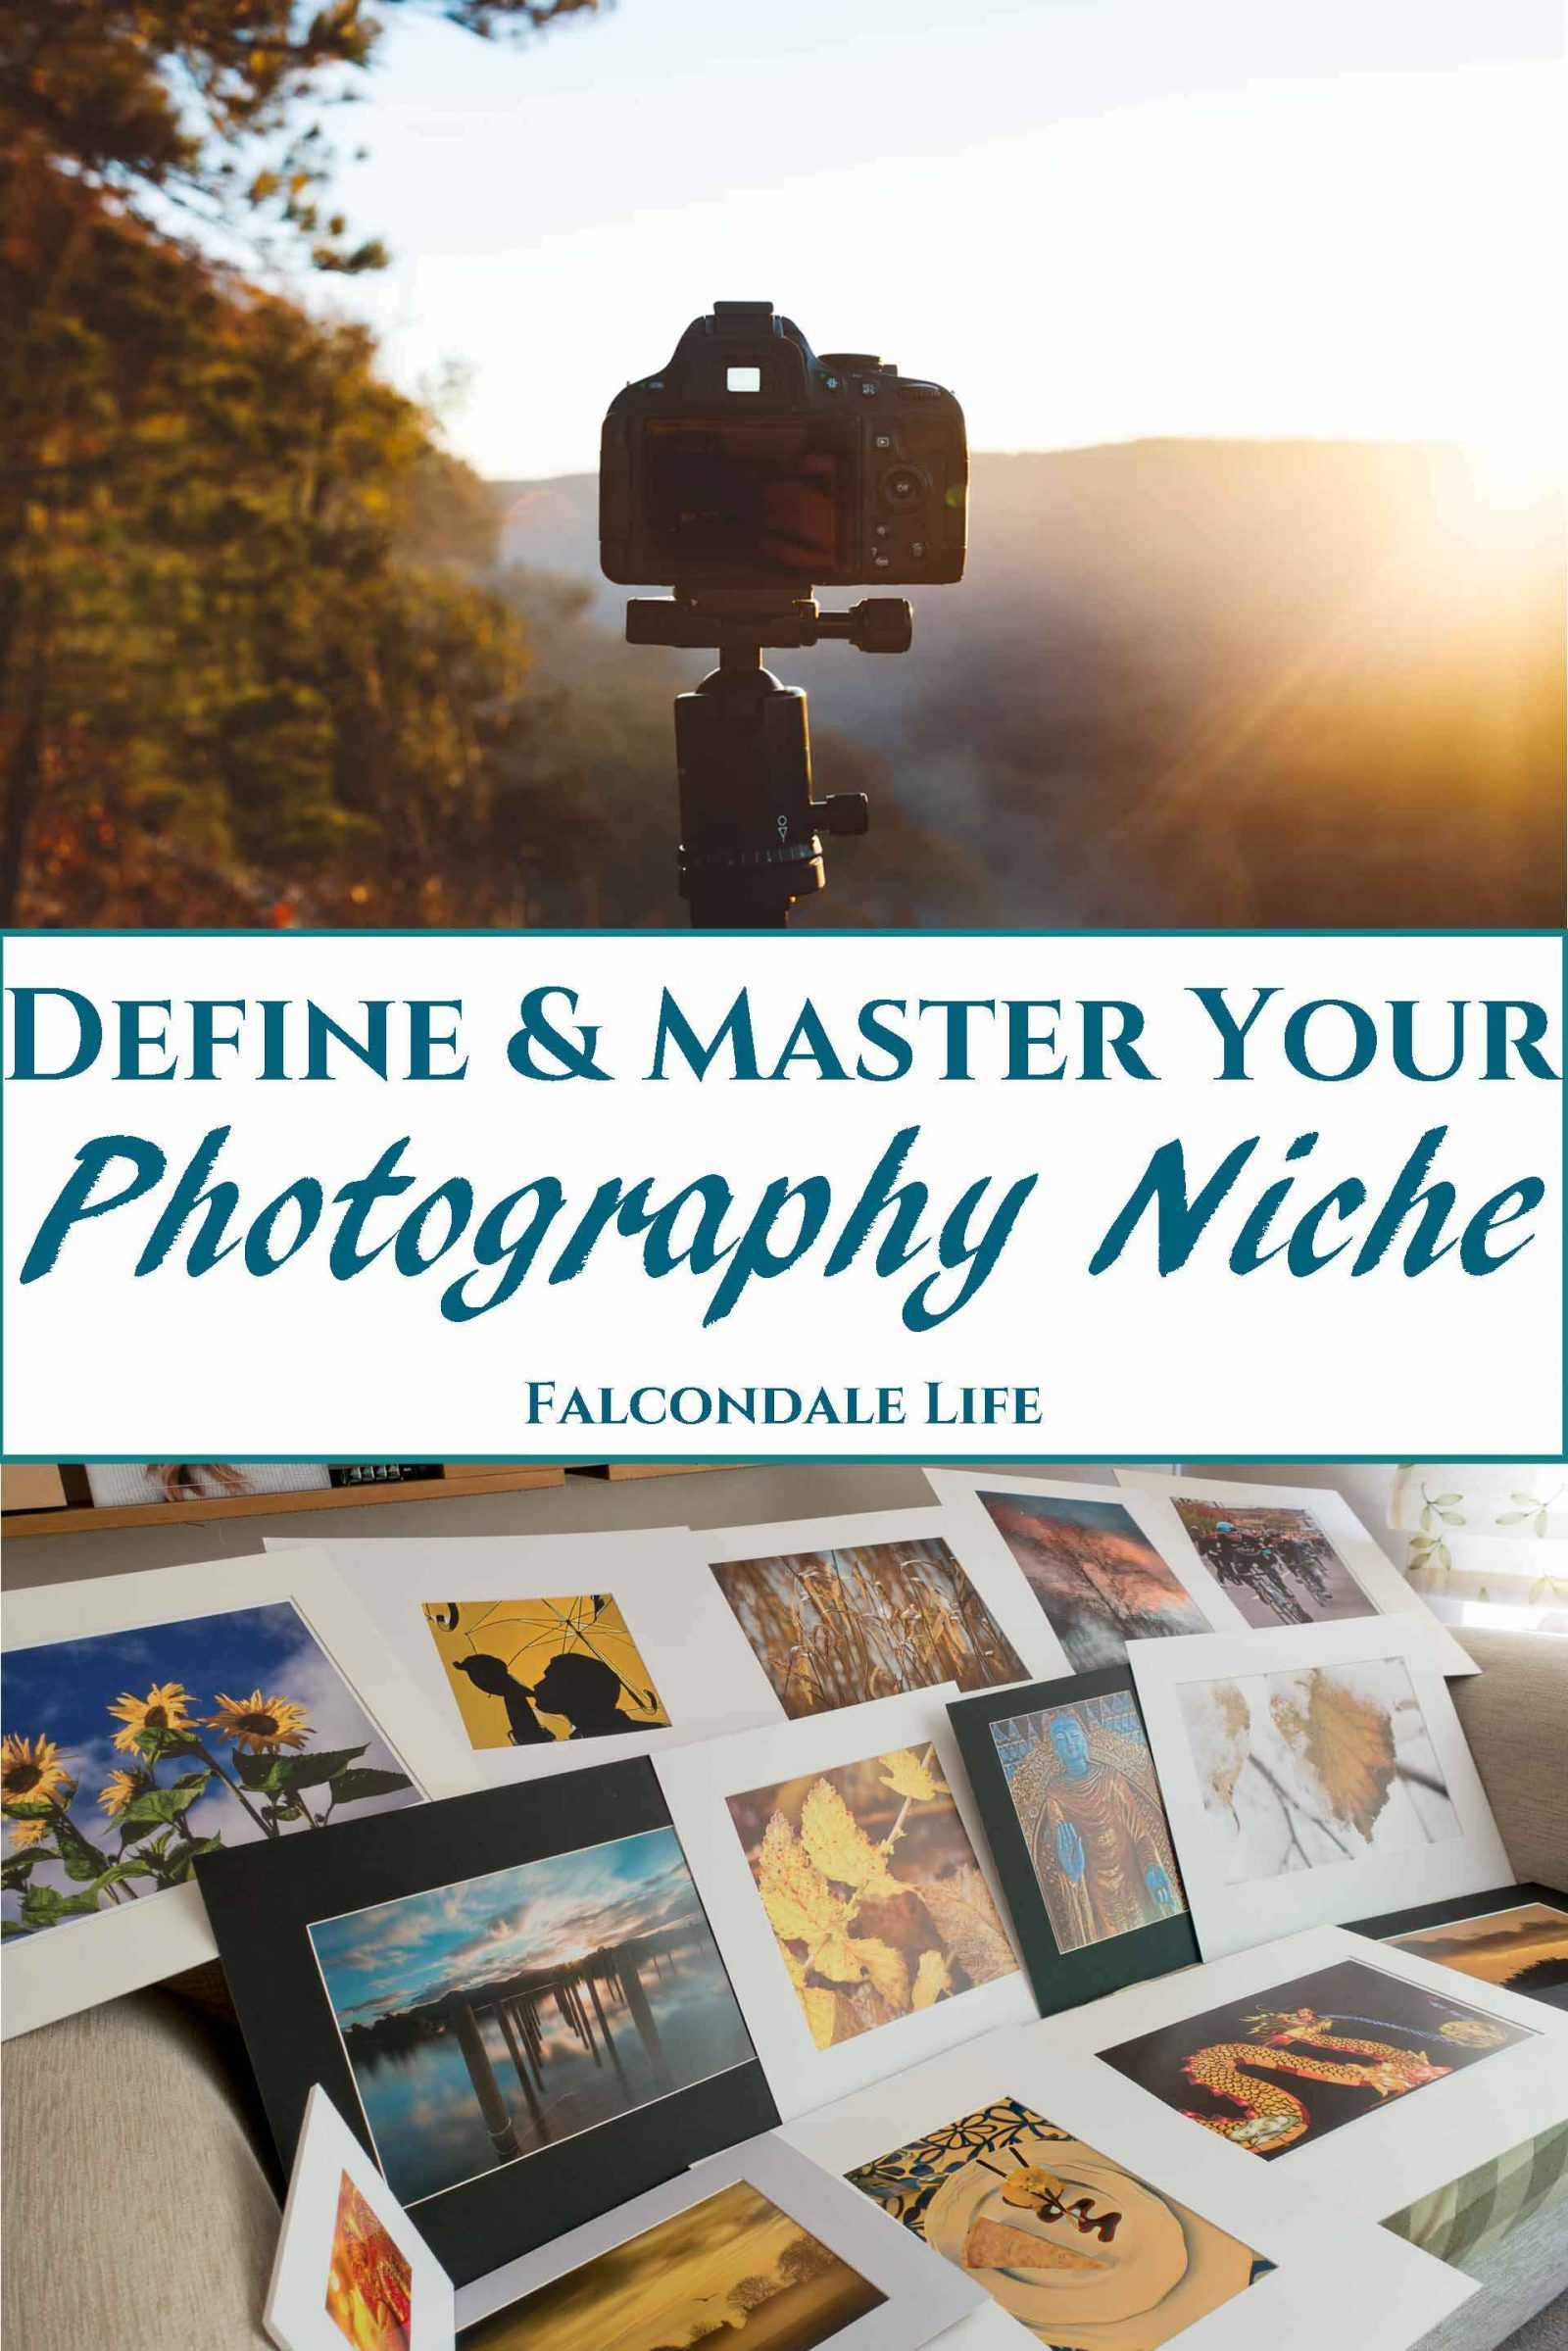 Find your niche as a photographer. There is no need to master every type of photography genre but use what inspires you and the local demand to specialize. Define and Master your Photography Niche on Falcondale Life blog. Image description: A variety of photo prints. and a camera on a tripod at sunset, plus blog title.